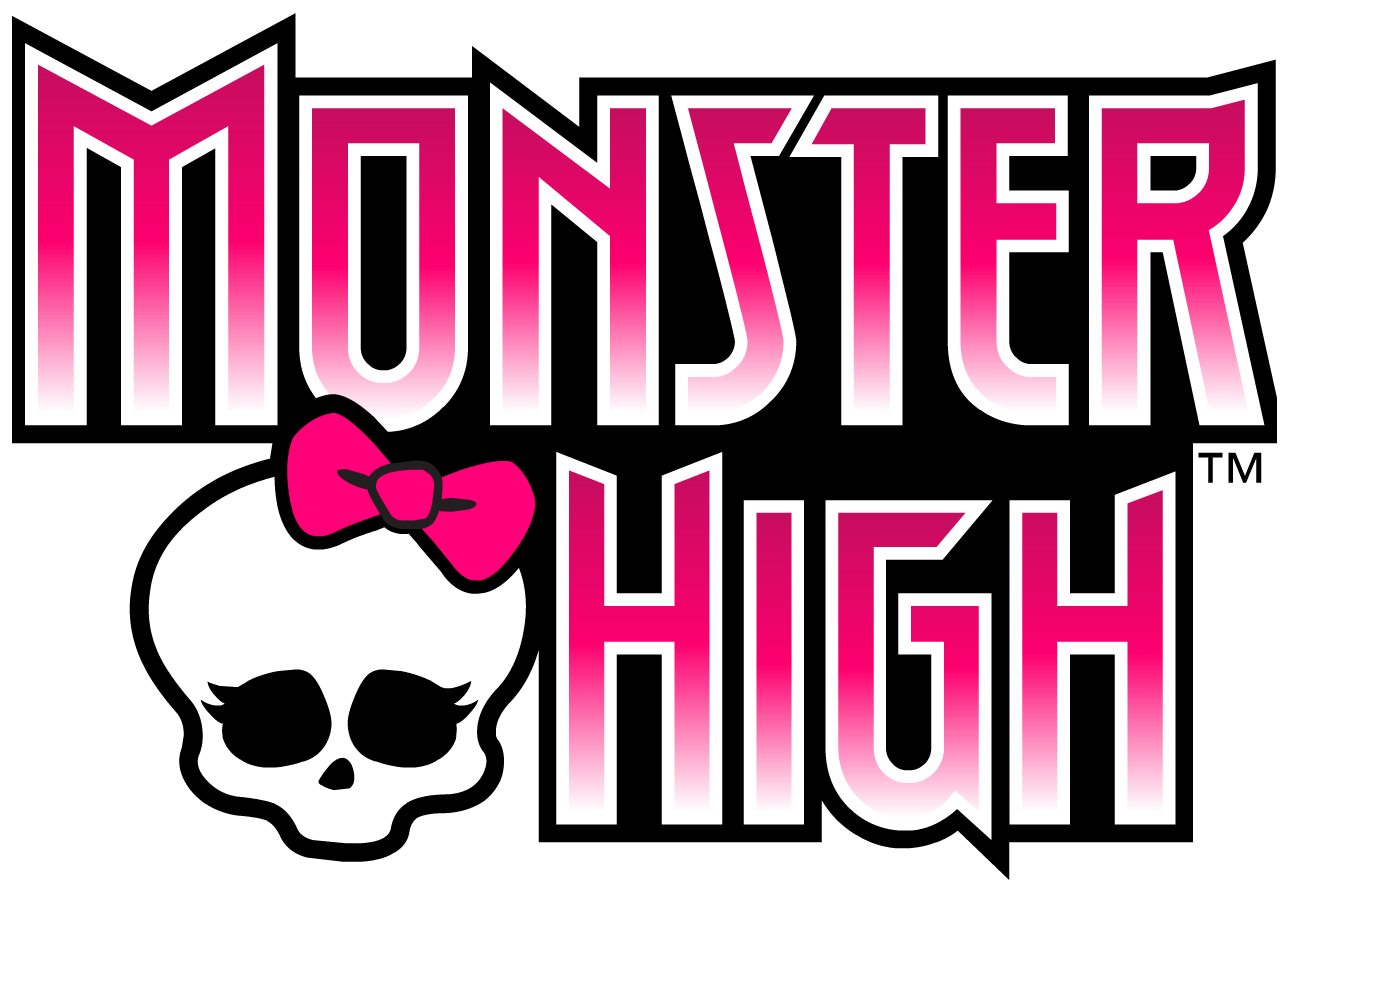 http://images.wikia.com/monsterhightania/es/images/9/92/Monster-high.png